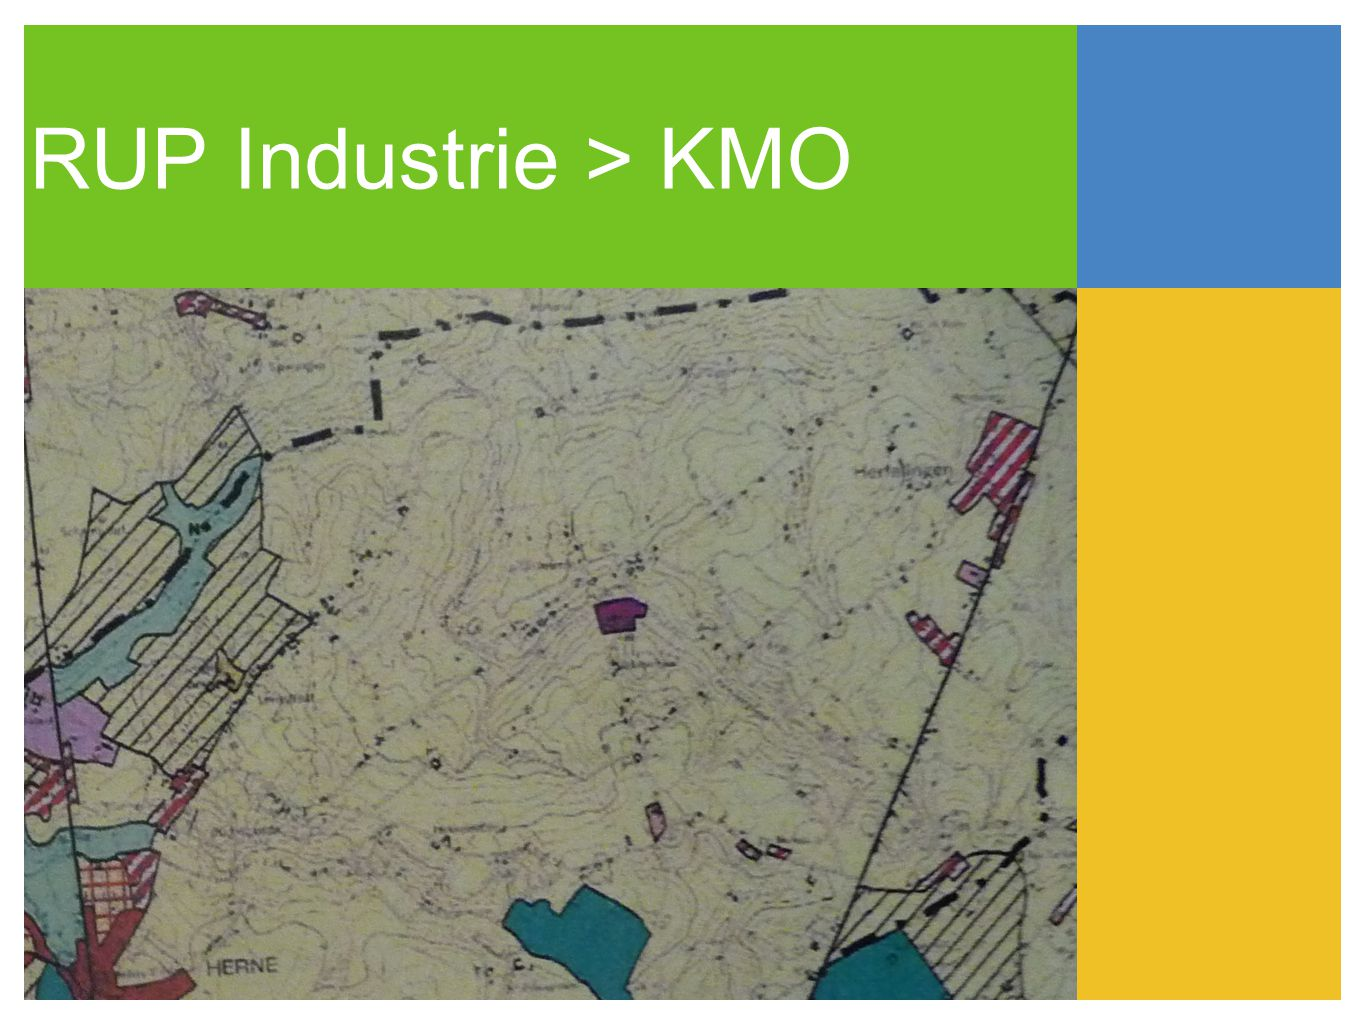 RUP Industrie > KMO